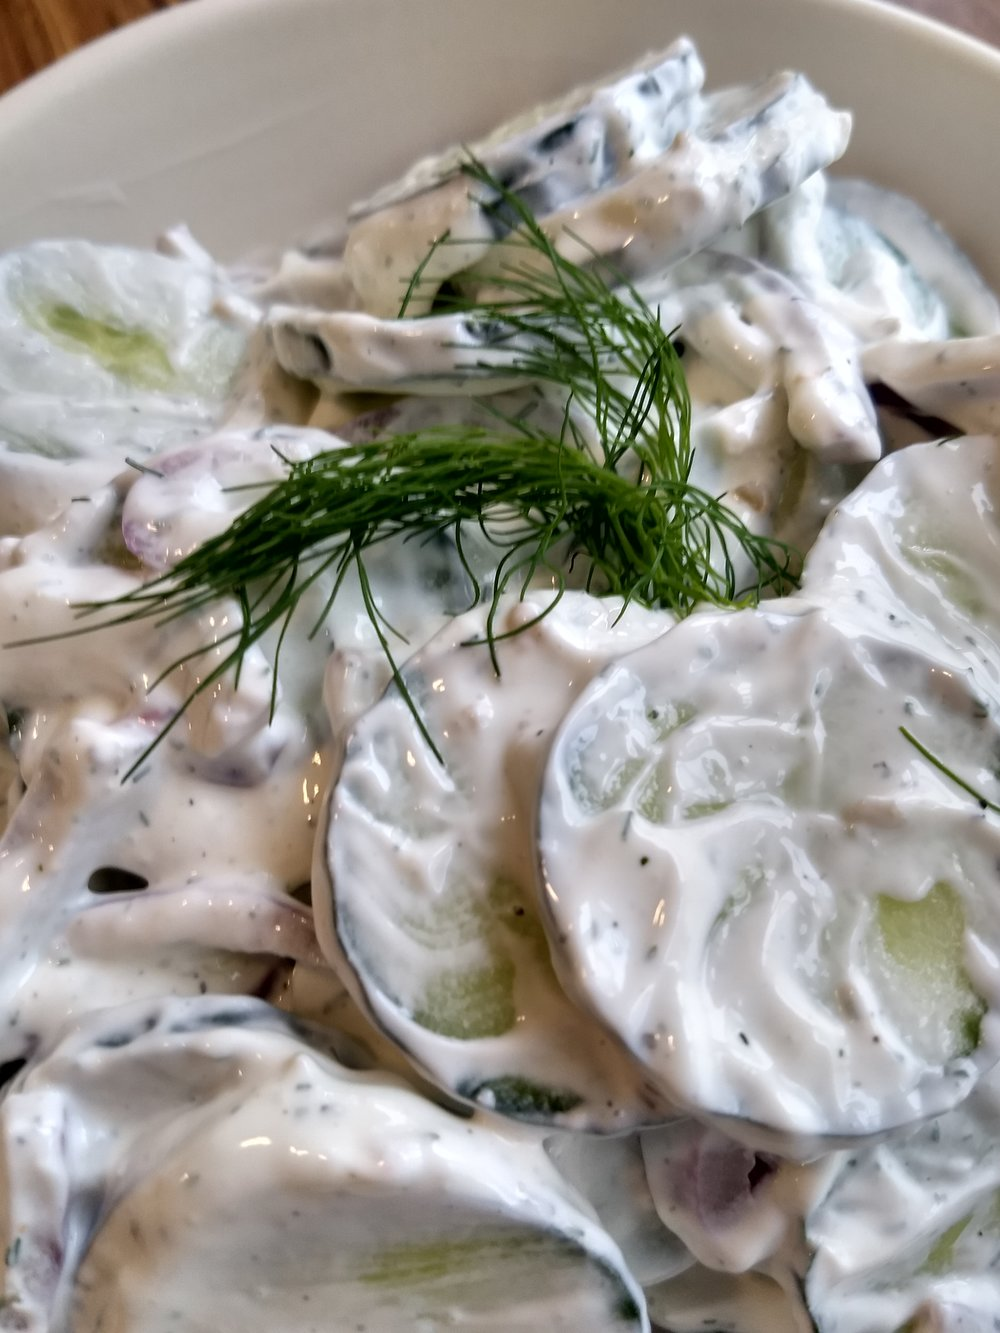 Creamy Cucumber Salad - Crisp and refreshing, this salad consists of English cucumbers, dressed up and ready to go in a smooth and refreshing sour cream sauce.  Fantastic for hot summer days.